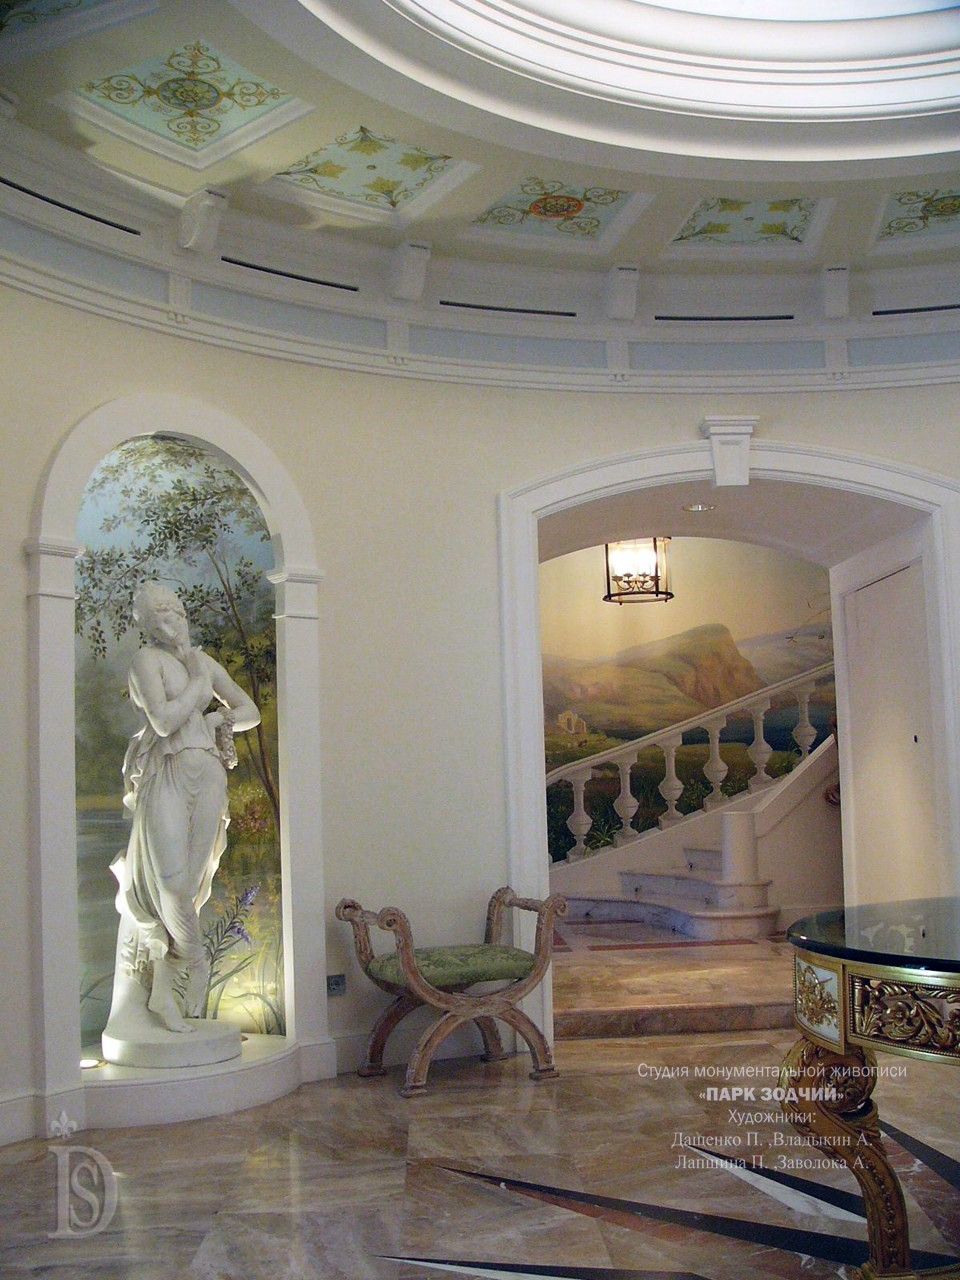 The elegant entrance hall with columns